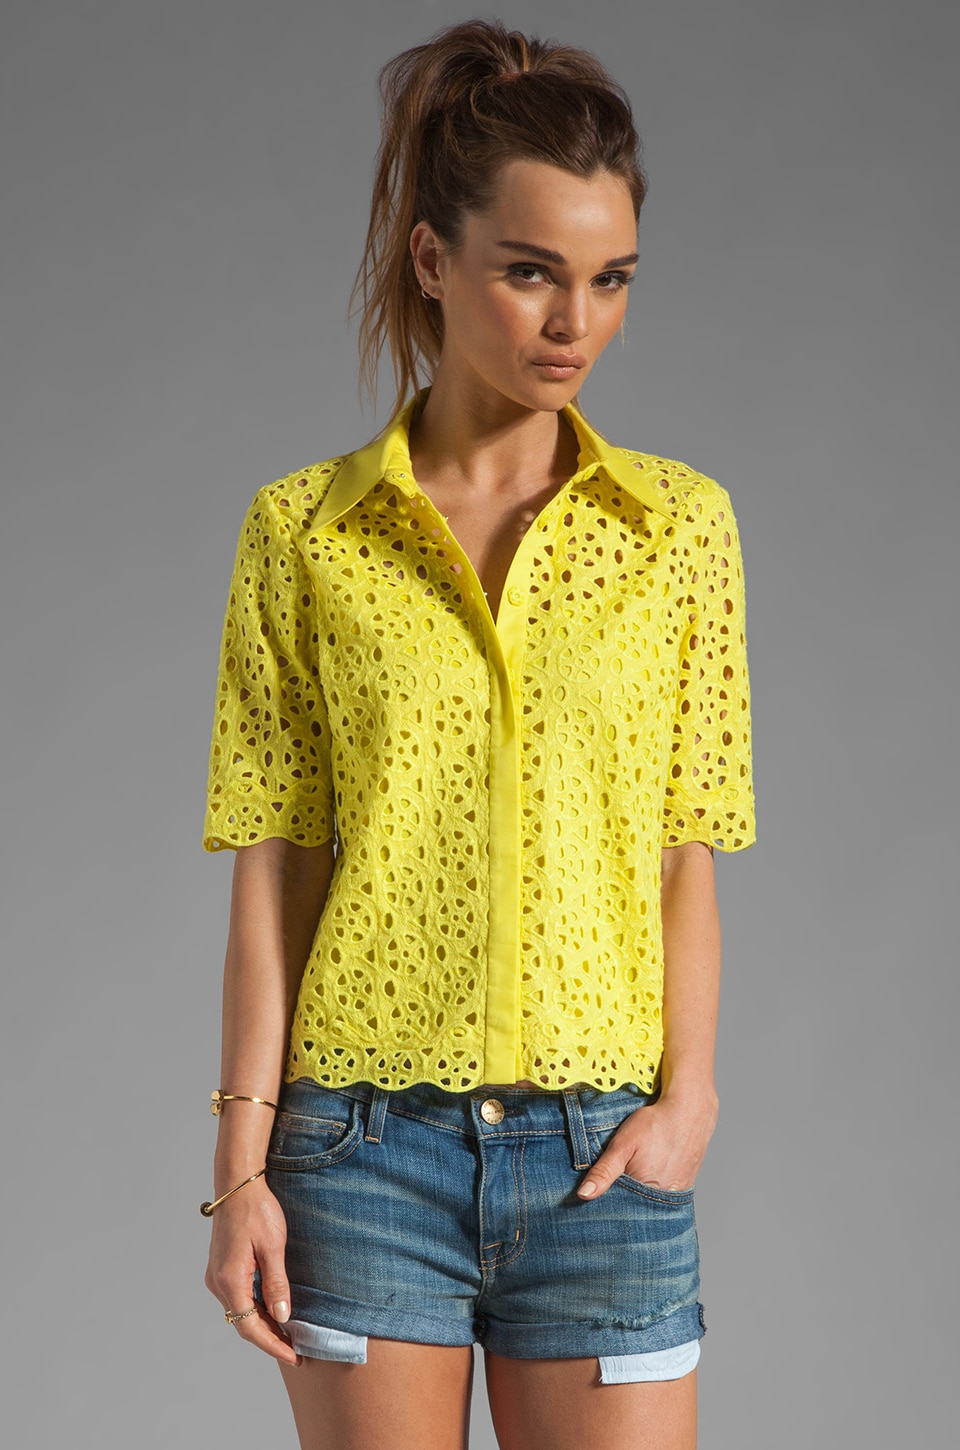 Catherine Malandrino Short Sleeve Collared Shirt in Pernot